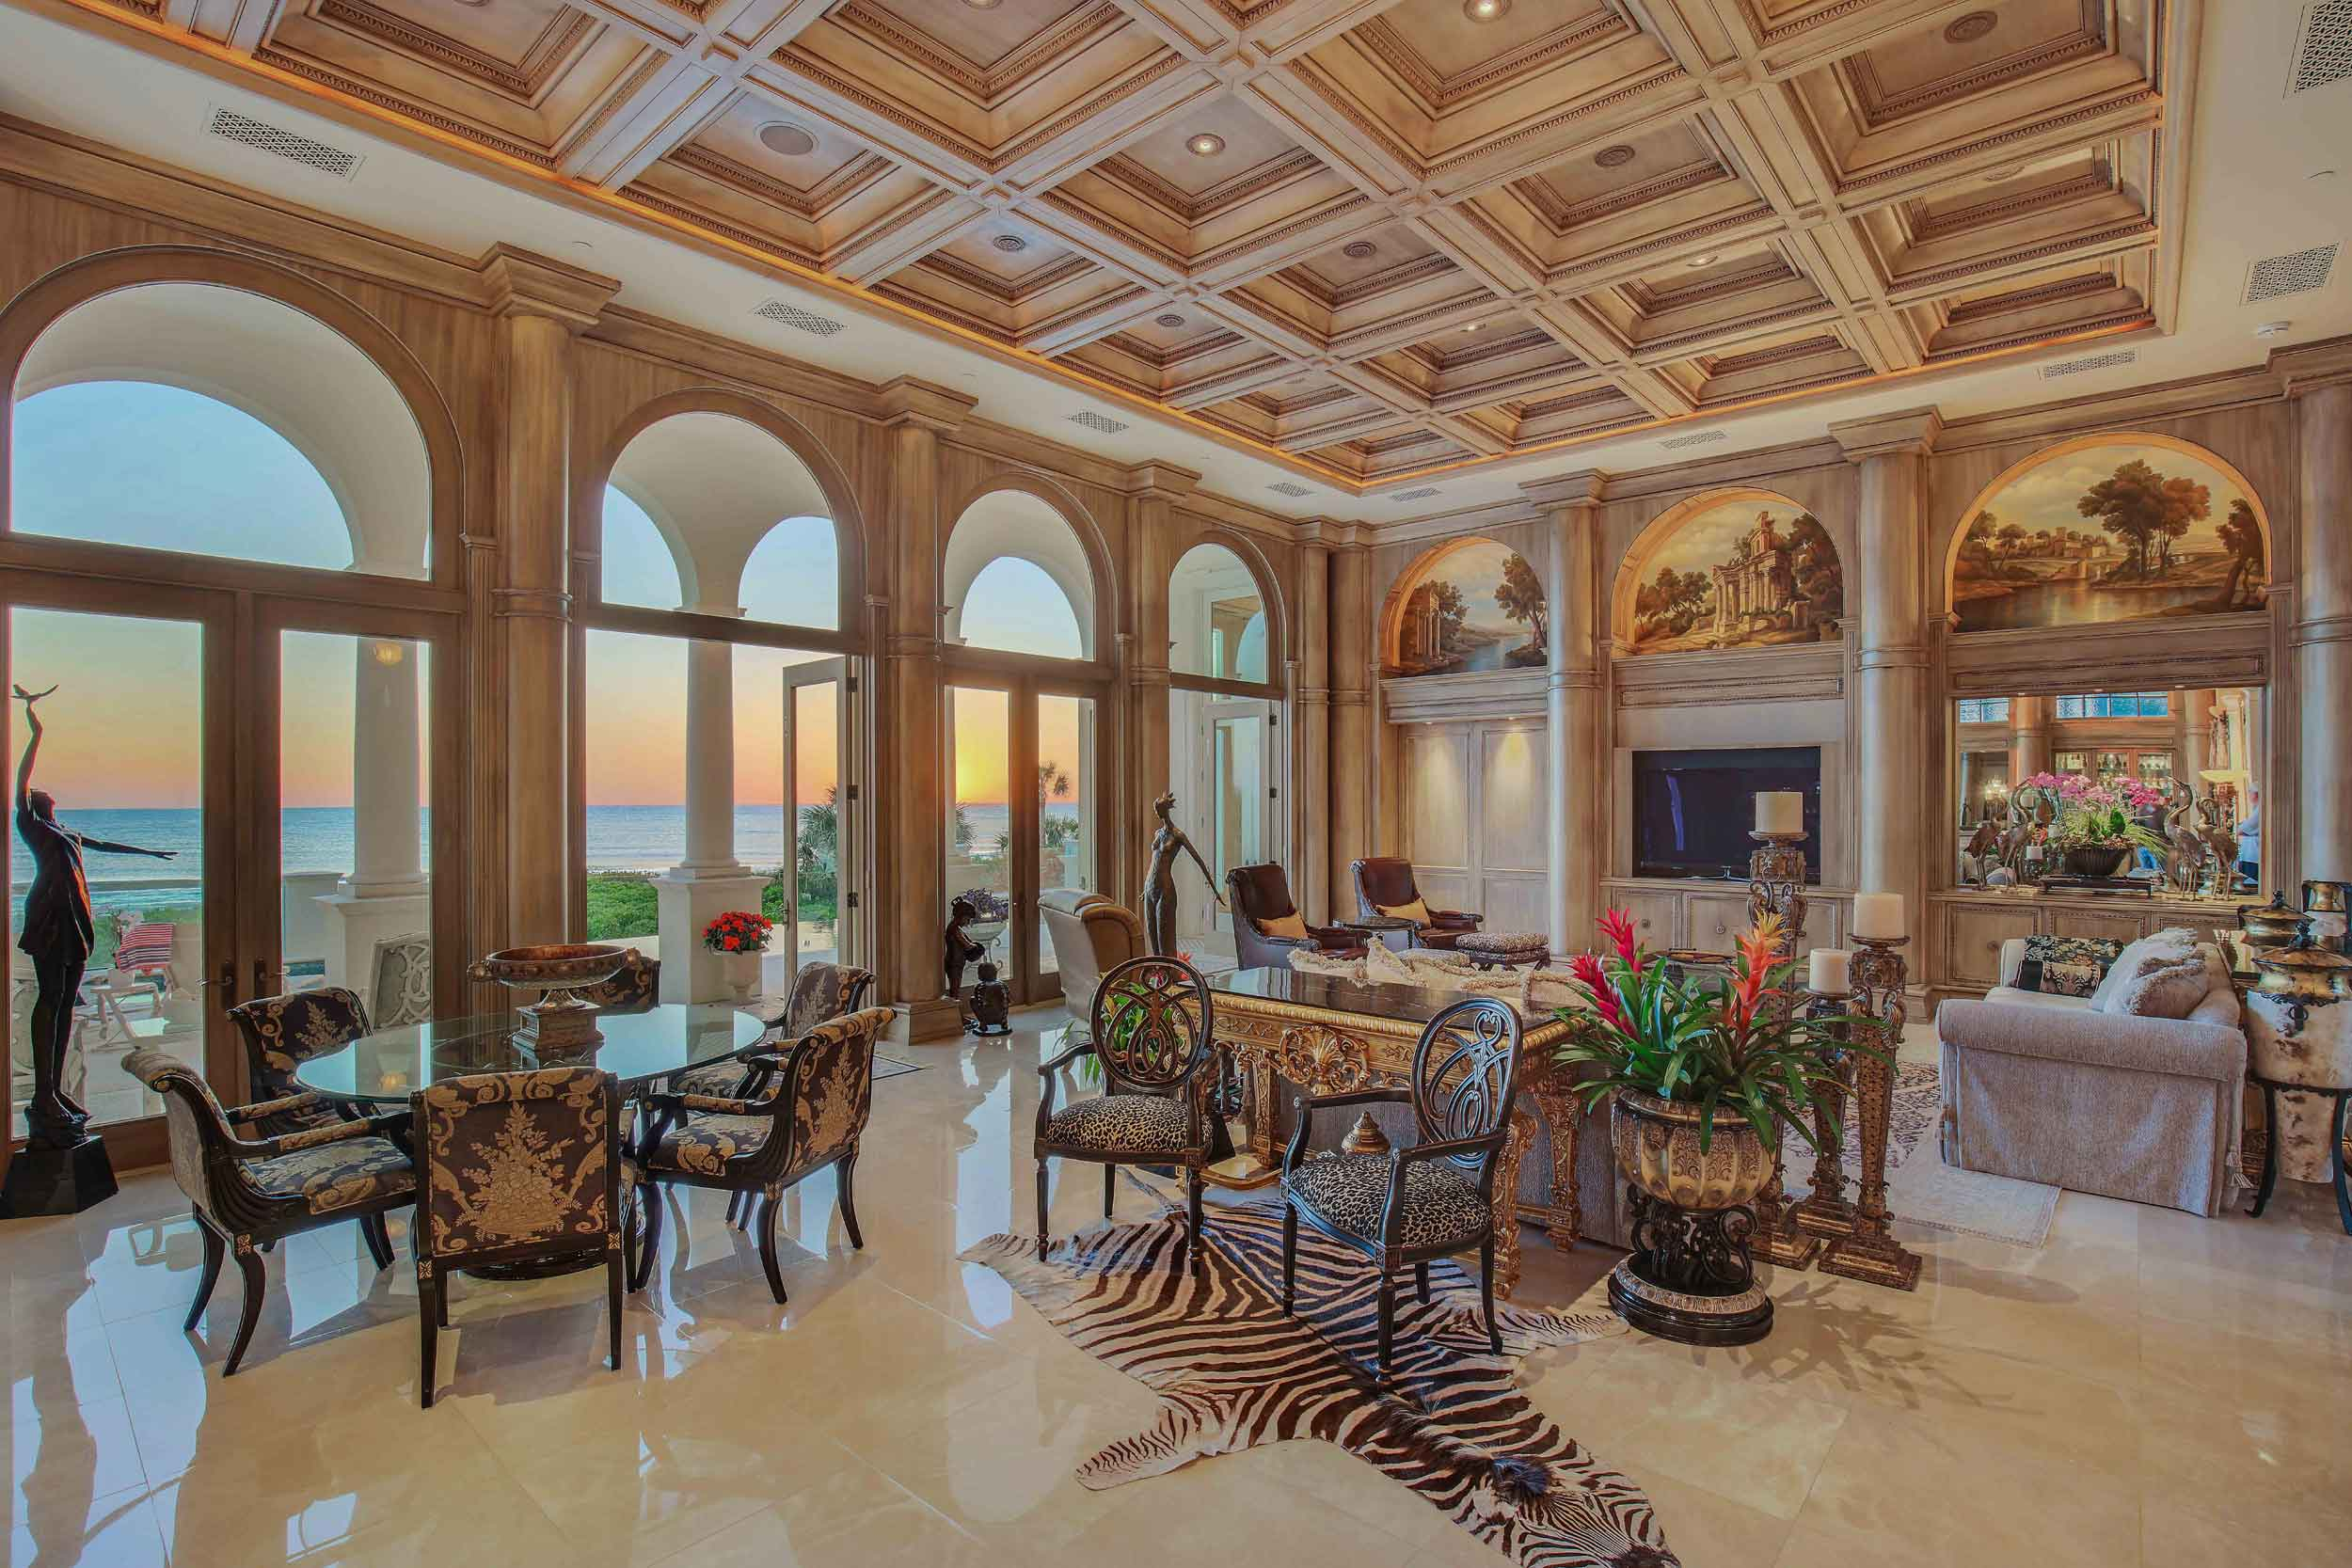 Designed with a reverence for Italian craftsmanship, Serenissima's palatial interiors abound with classical details, such as lyrical murals depicting scenes from the great Republic of Venice, which are offset by monumental columns and archways, glittering chandeliers, and extraordinary millwork.